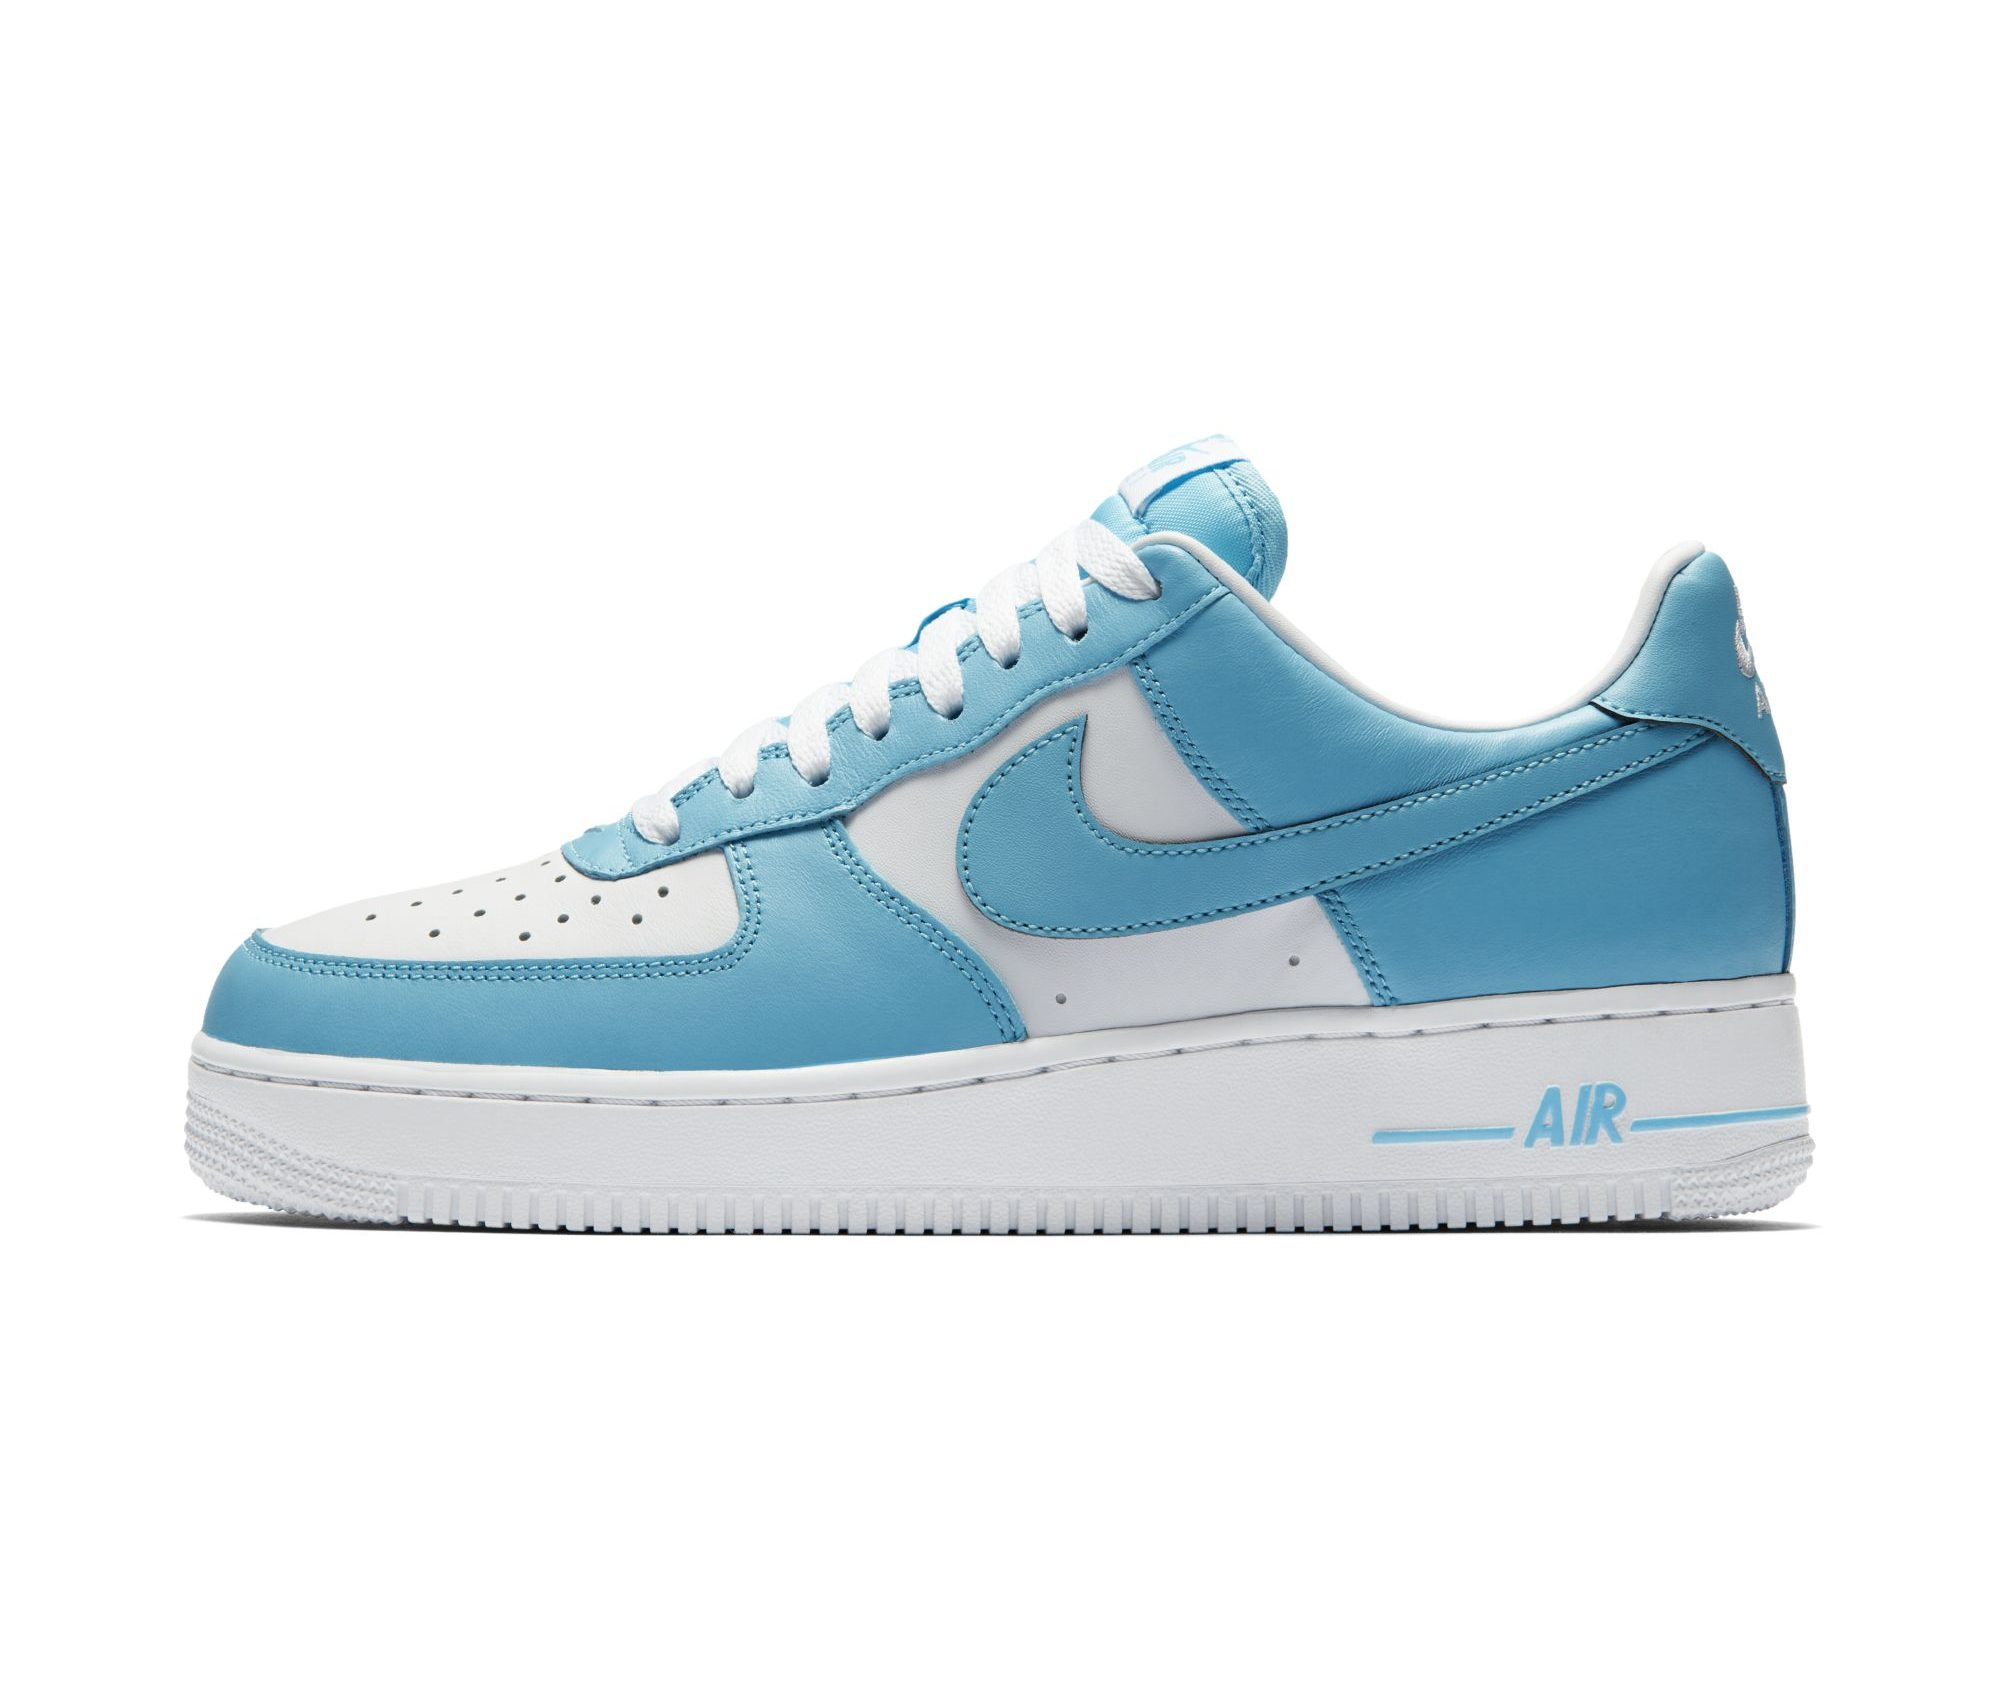 promo code 82284 2b757 air force 1 low Archives - WearTesters